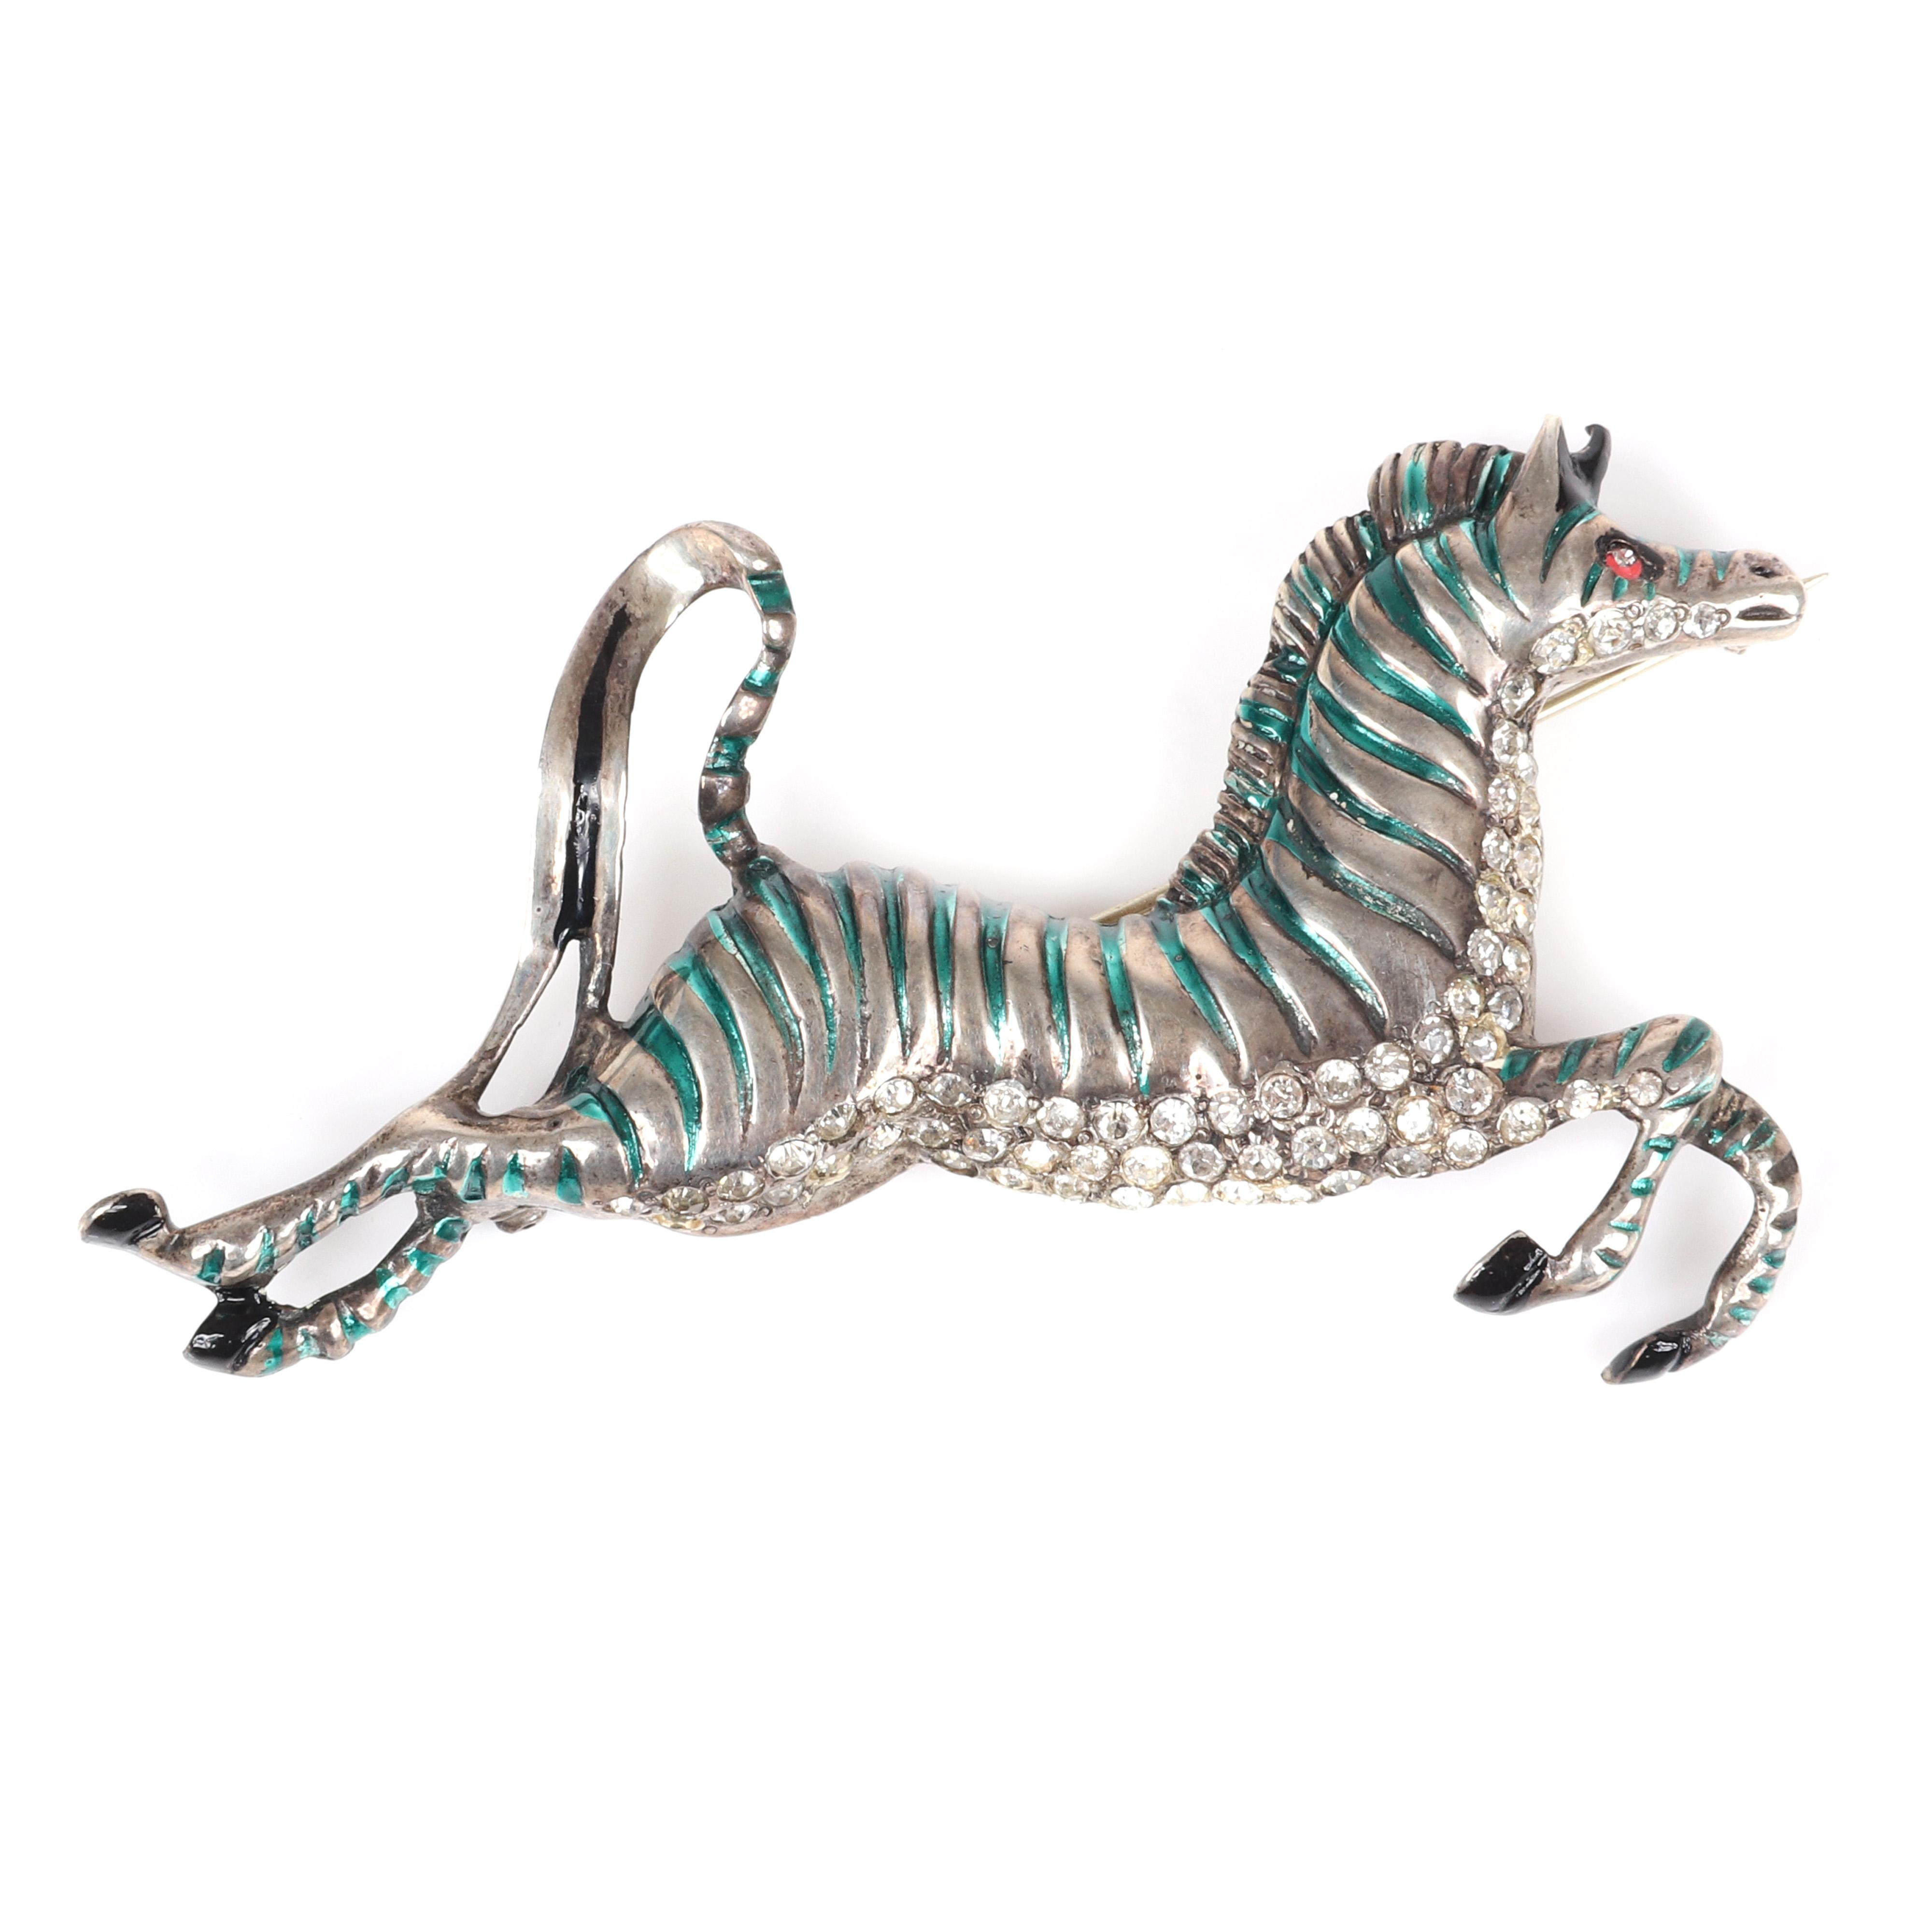 "Eisenberg Original figural prancing Zebra brooch with carved body, green enamel stripes, black enamel accents and clear rhinestones along the belly, mid-1940s. 2"" x 3 1/2"""